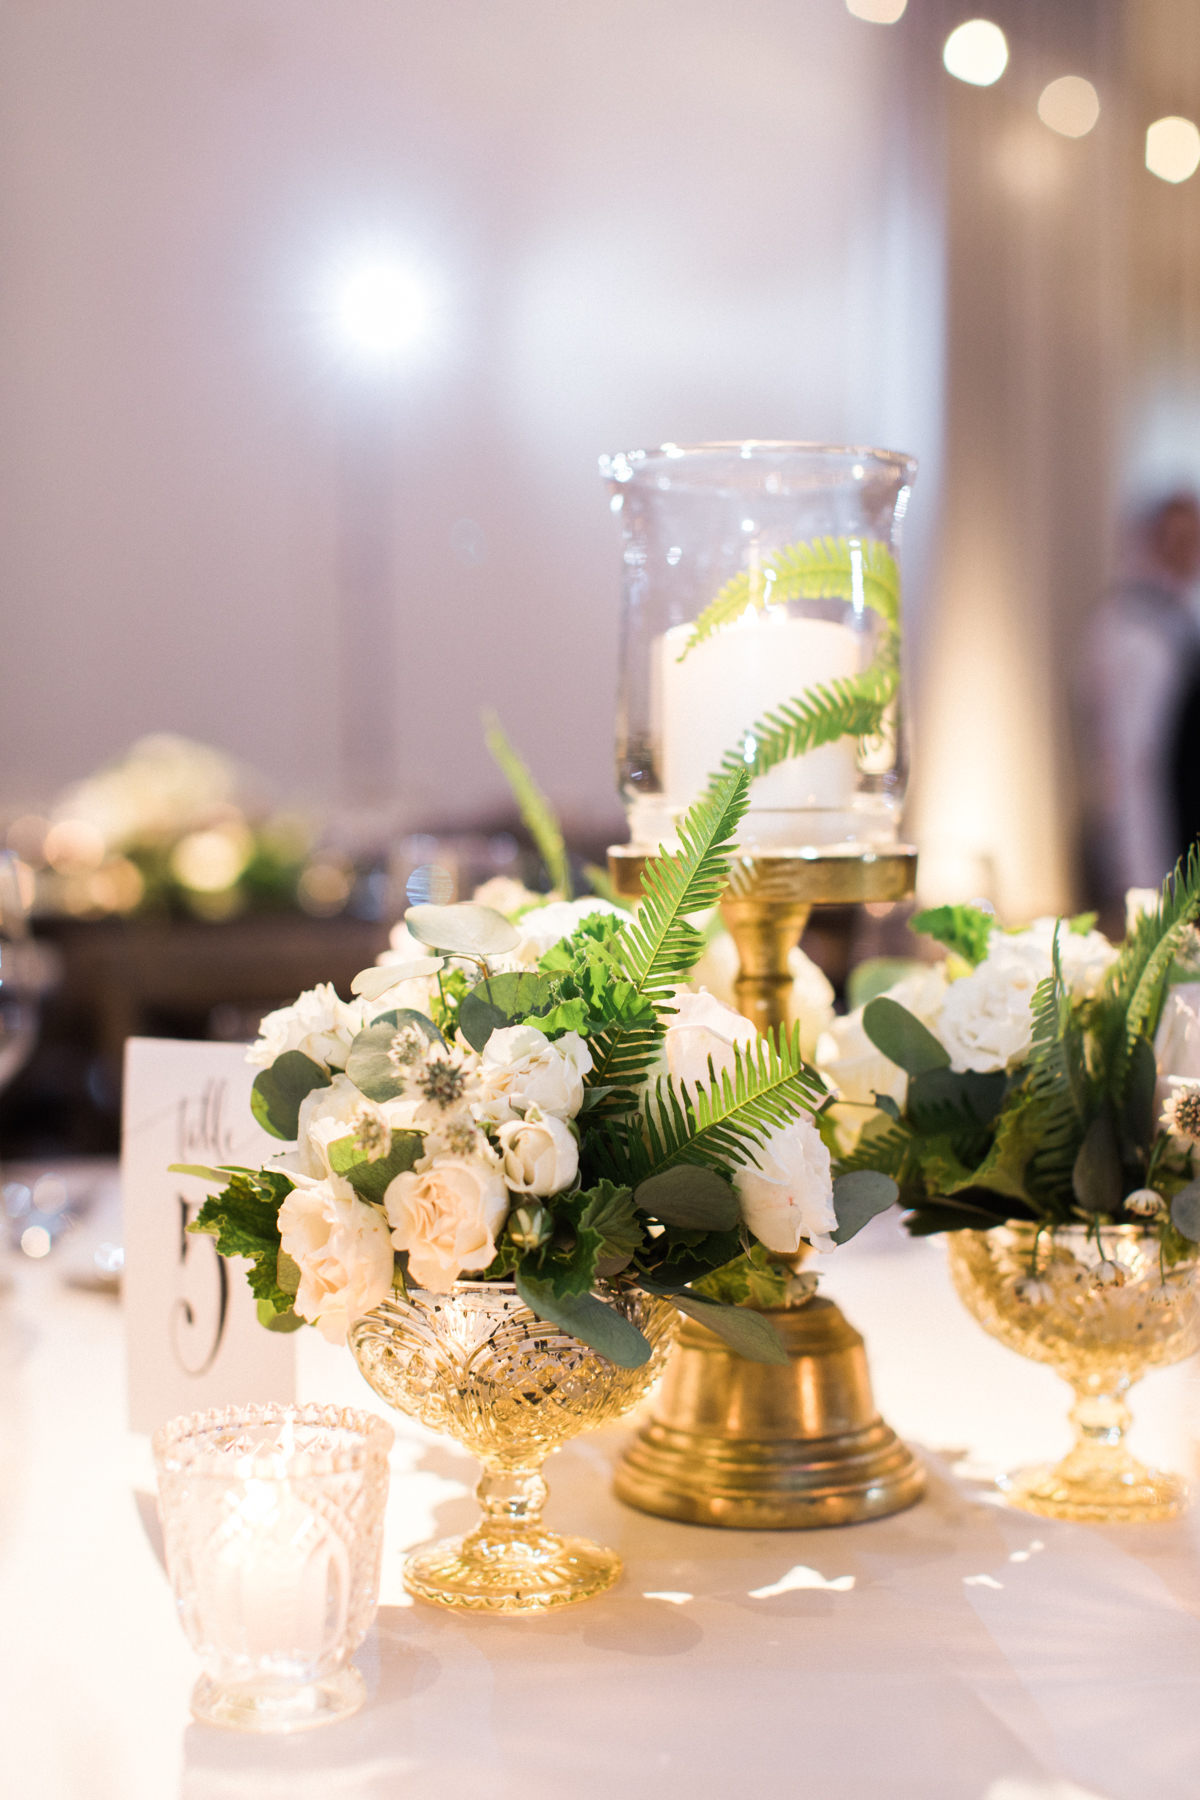 Flowers by Fleur Inc, Planning by Shannon Gail Weddings, The Ivy Room Chicago, Image by Kristin Lavoie Photography